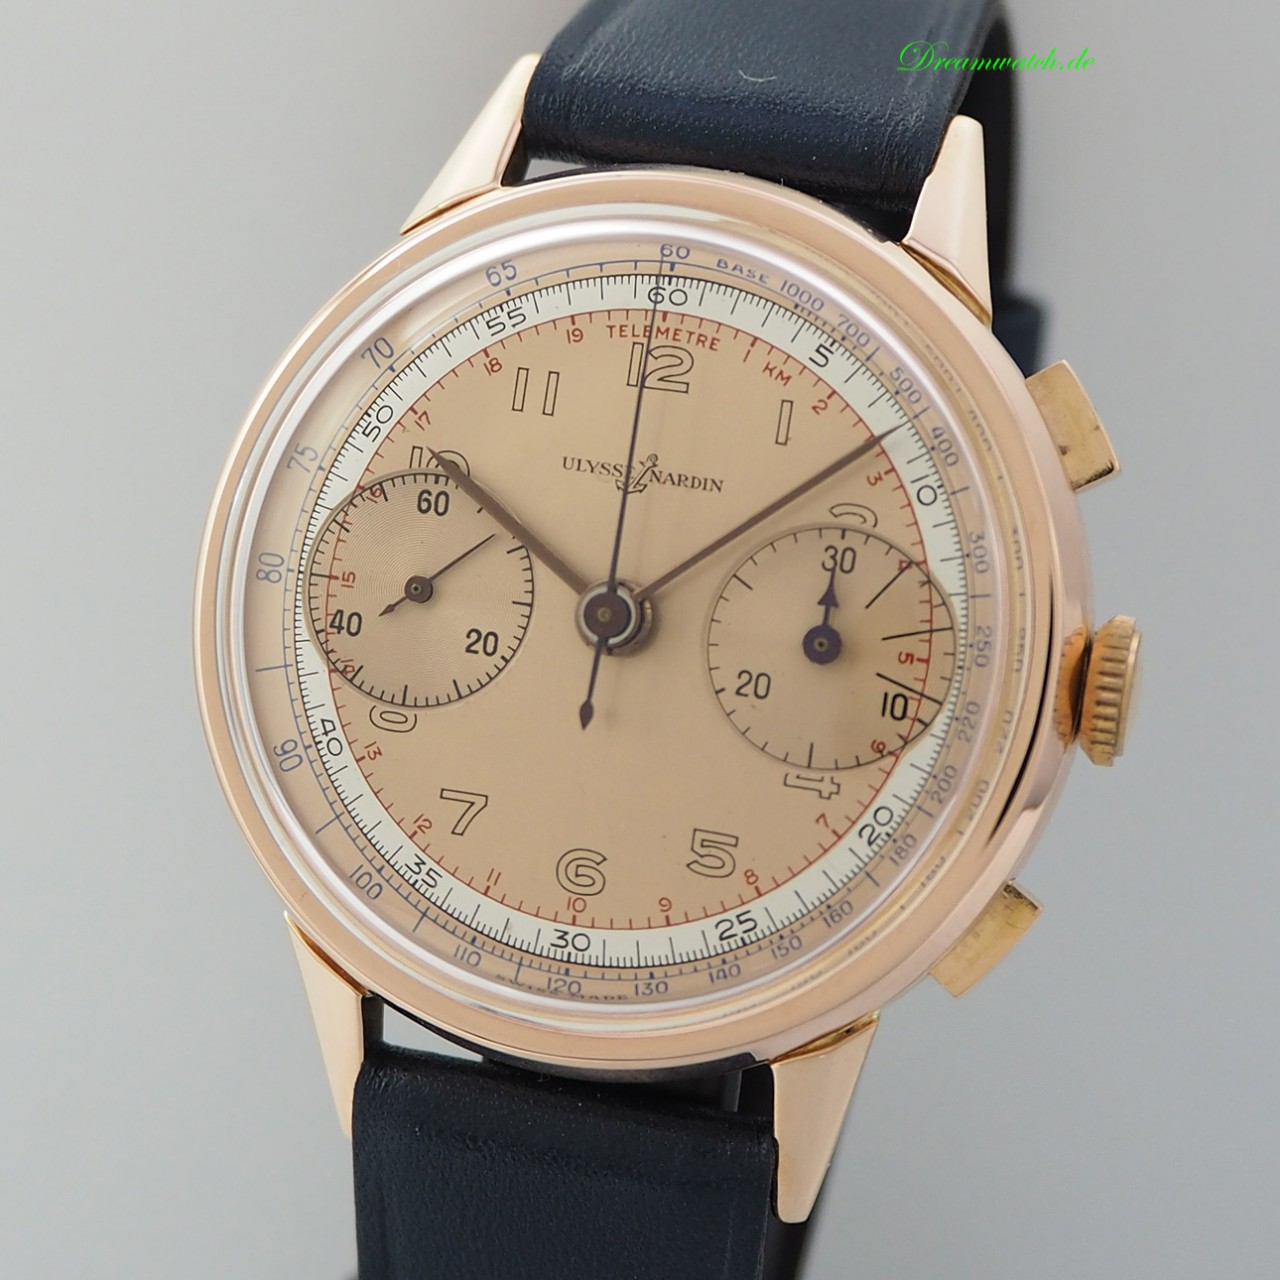 """Ulysse Nardin Chronograph Vintage -Rosegold 18k/750 from 1942 """"stepped case"""" + papers/ UN service"""